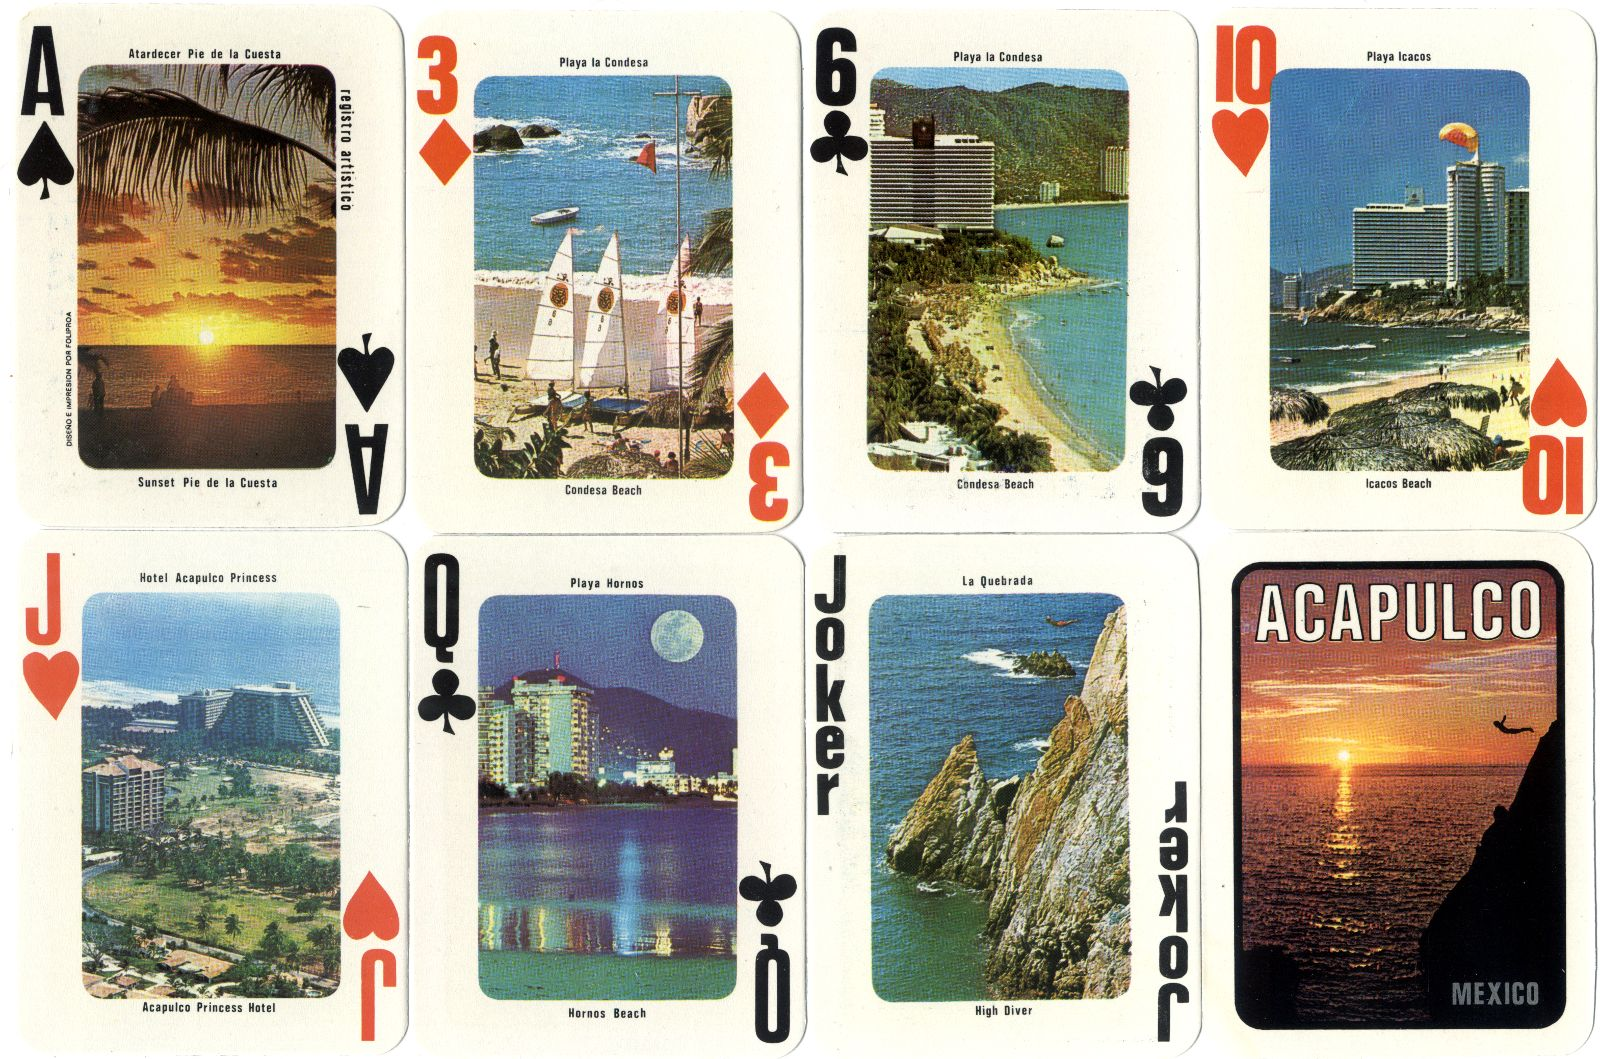 Acapulco Souvenir playing cards designed and printed by Foliproa, Mexico